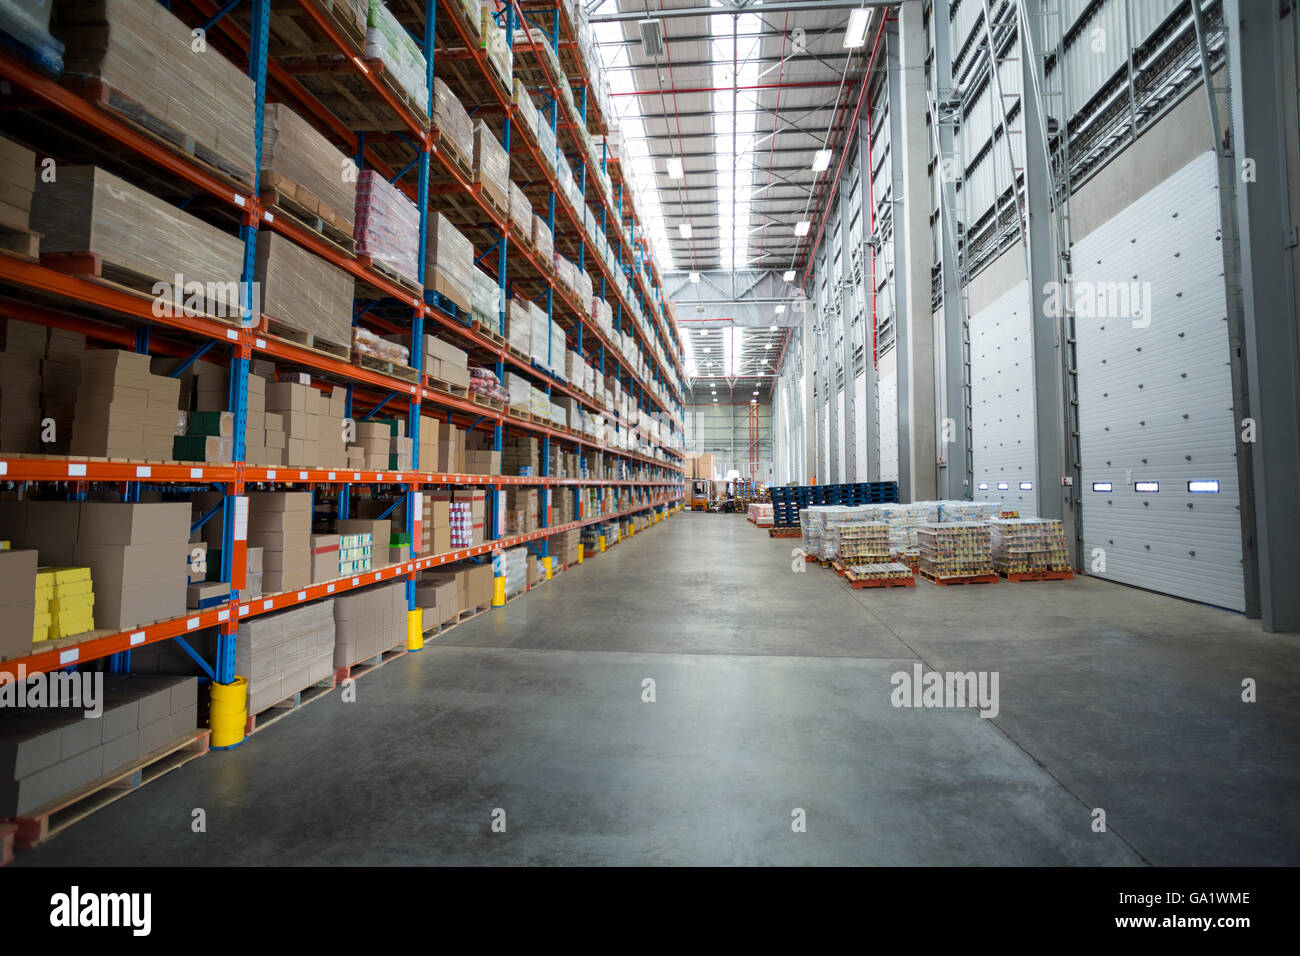 View of goods are tidy on shelves - Stock Image